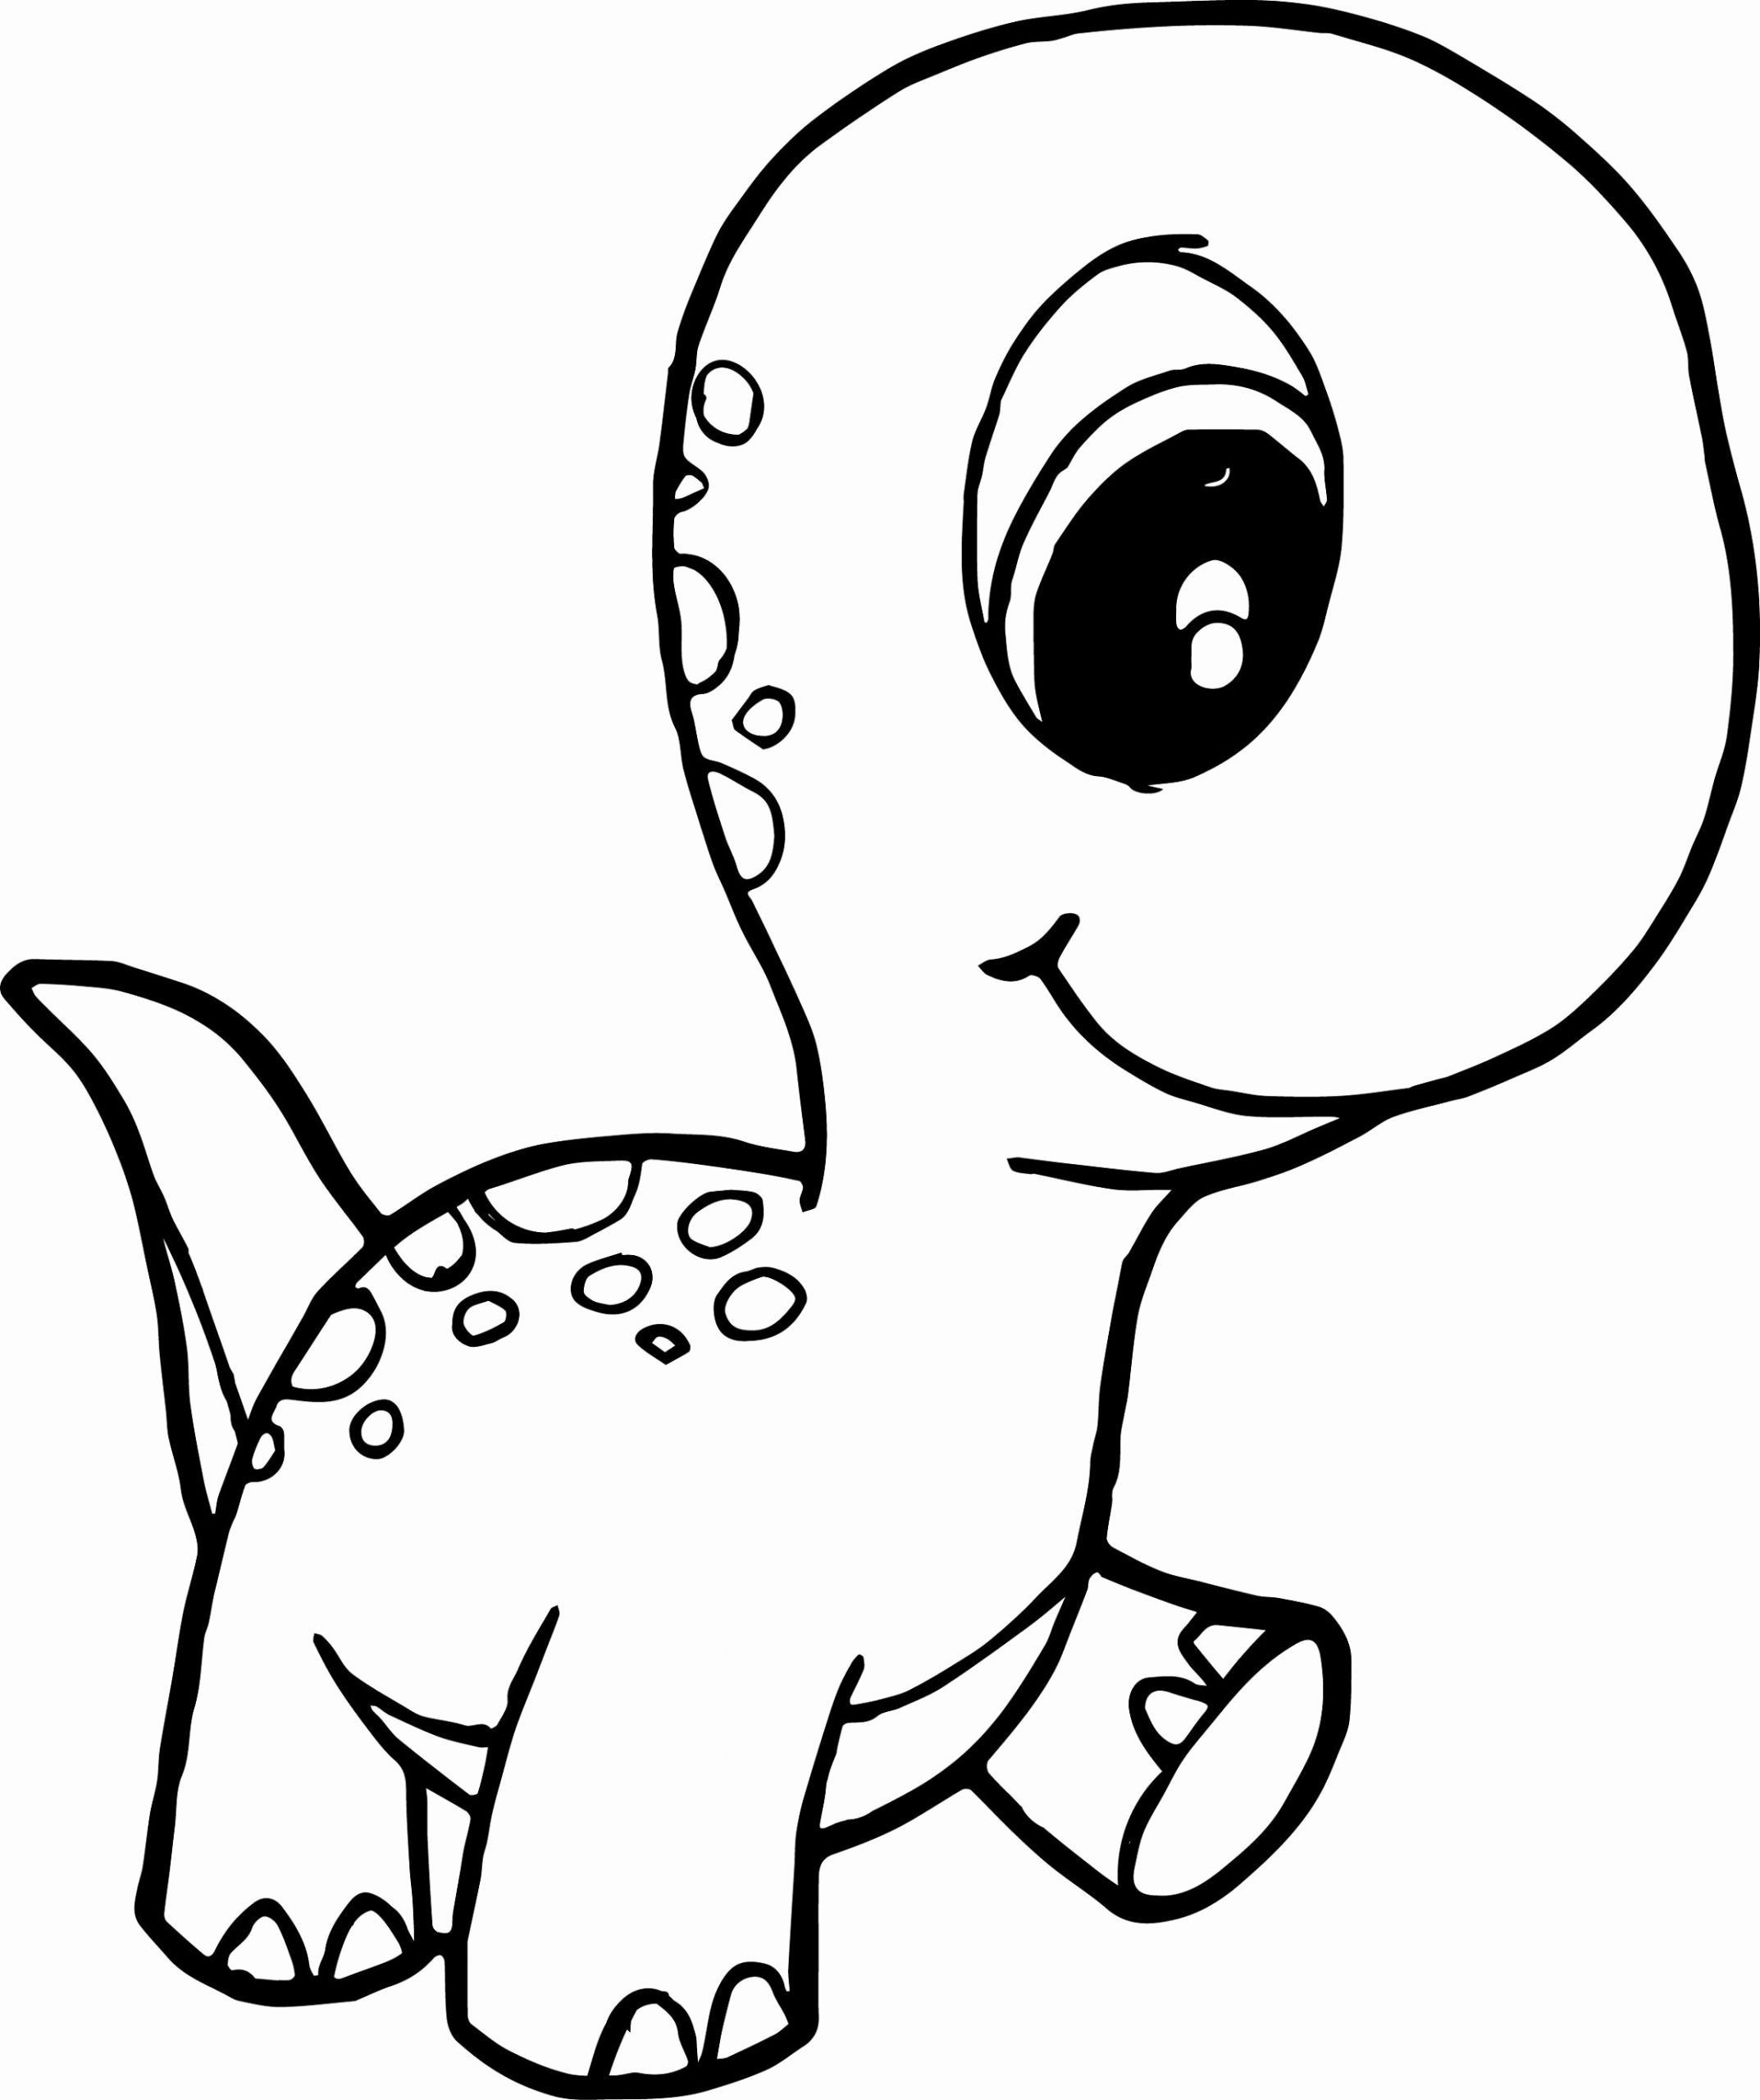 Cute Baby Animal Coloring Pages in 2020 Dinosaur